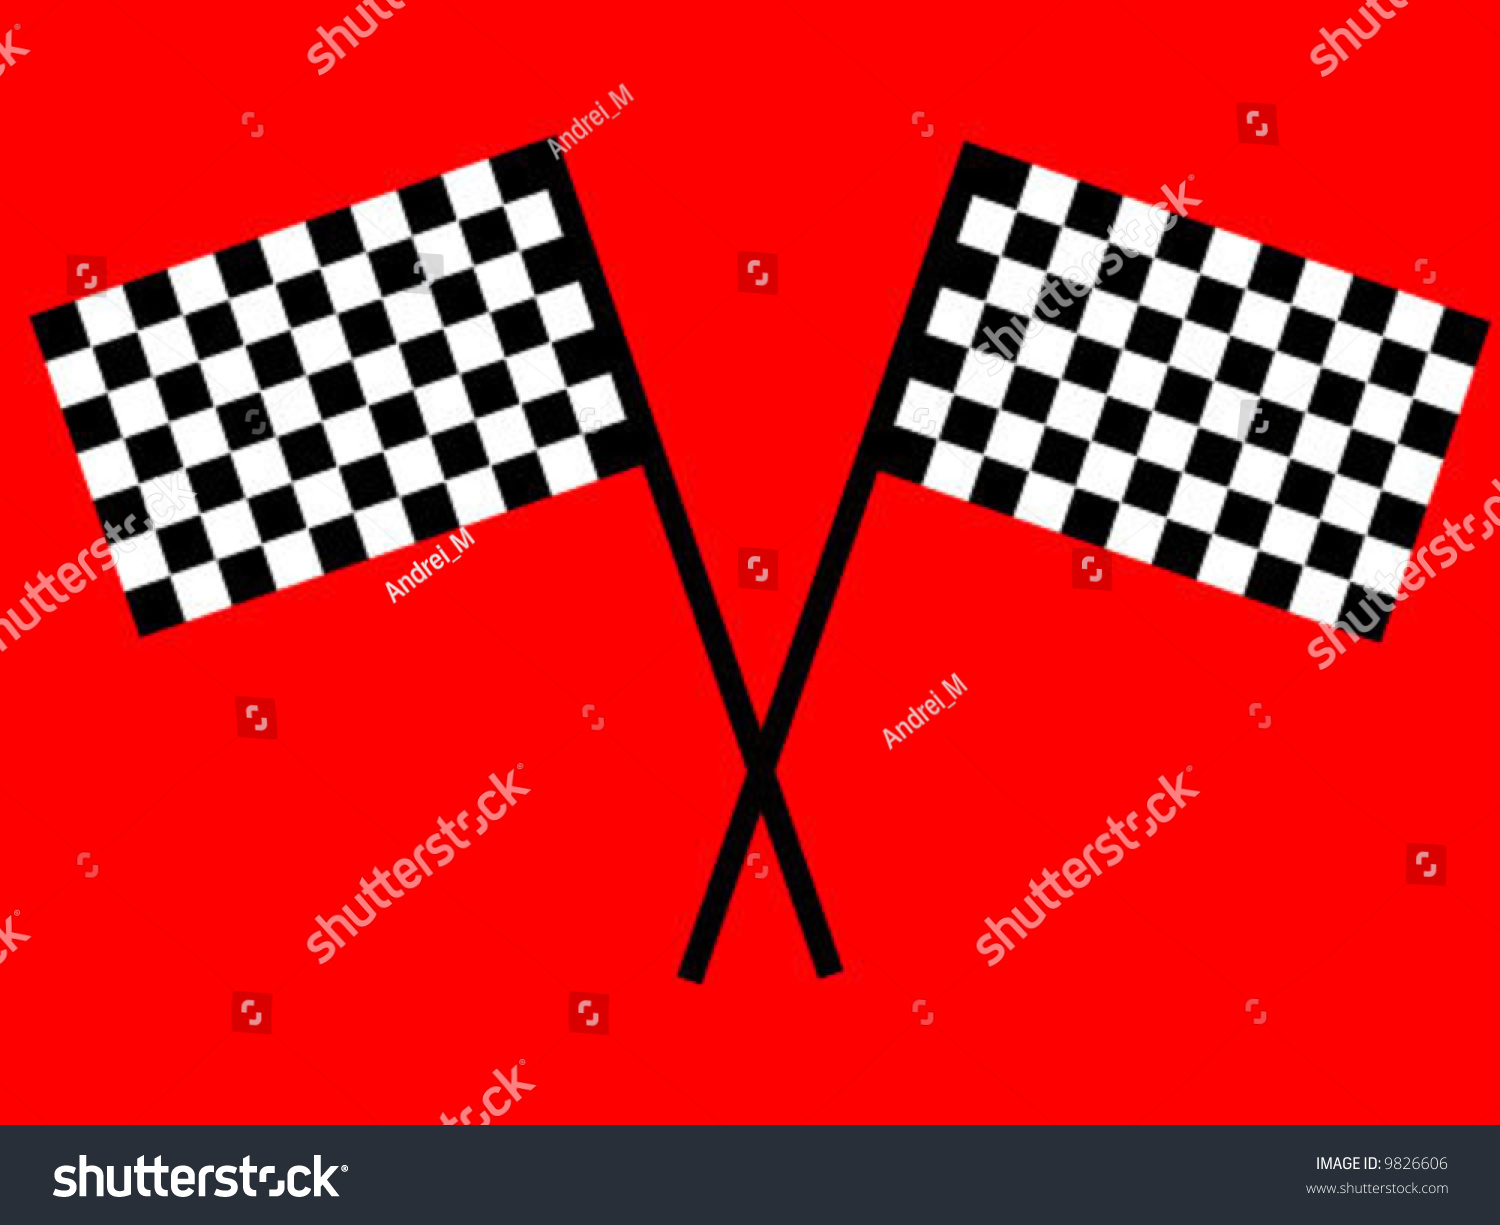 Checkered Flag On Red Background Stock Vector Illustration ...